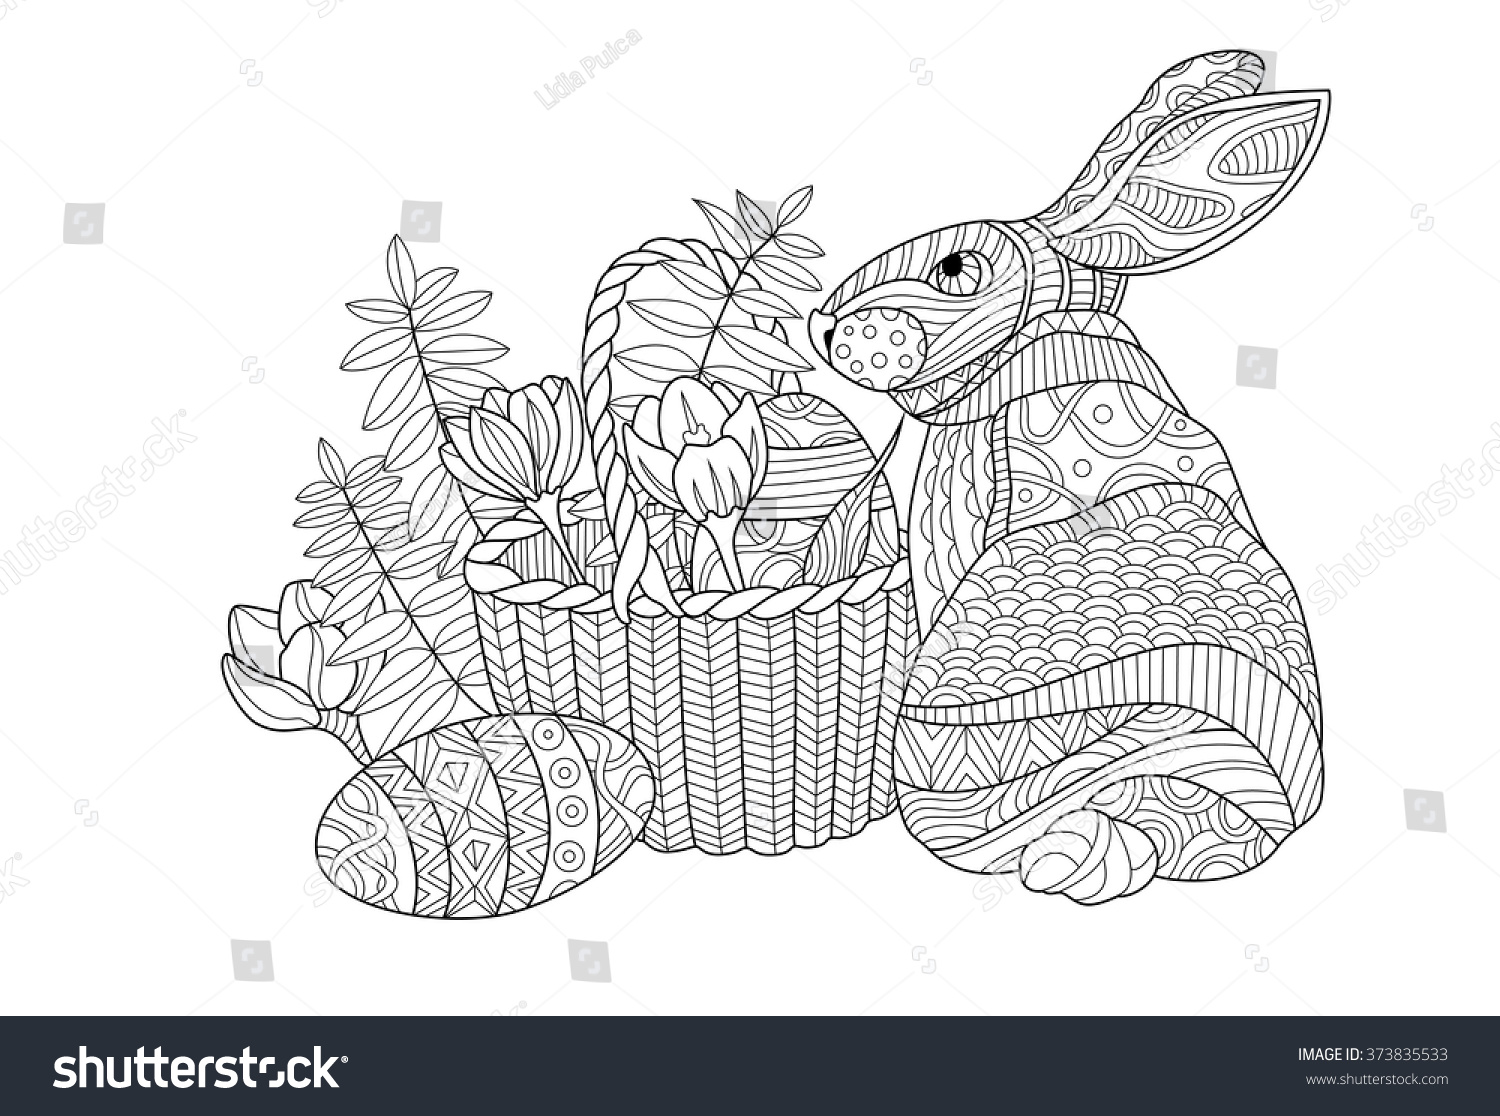 Easter Bunny Coloring Page Illustration Stock Vector (Royalty Free ...